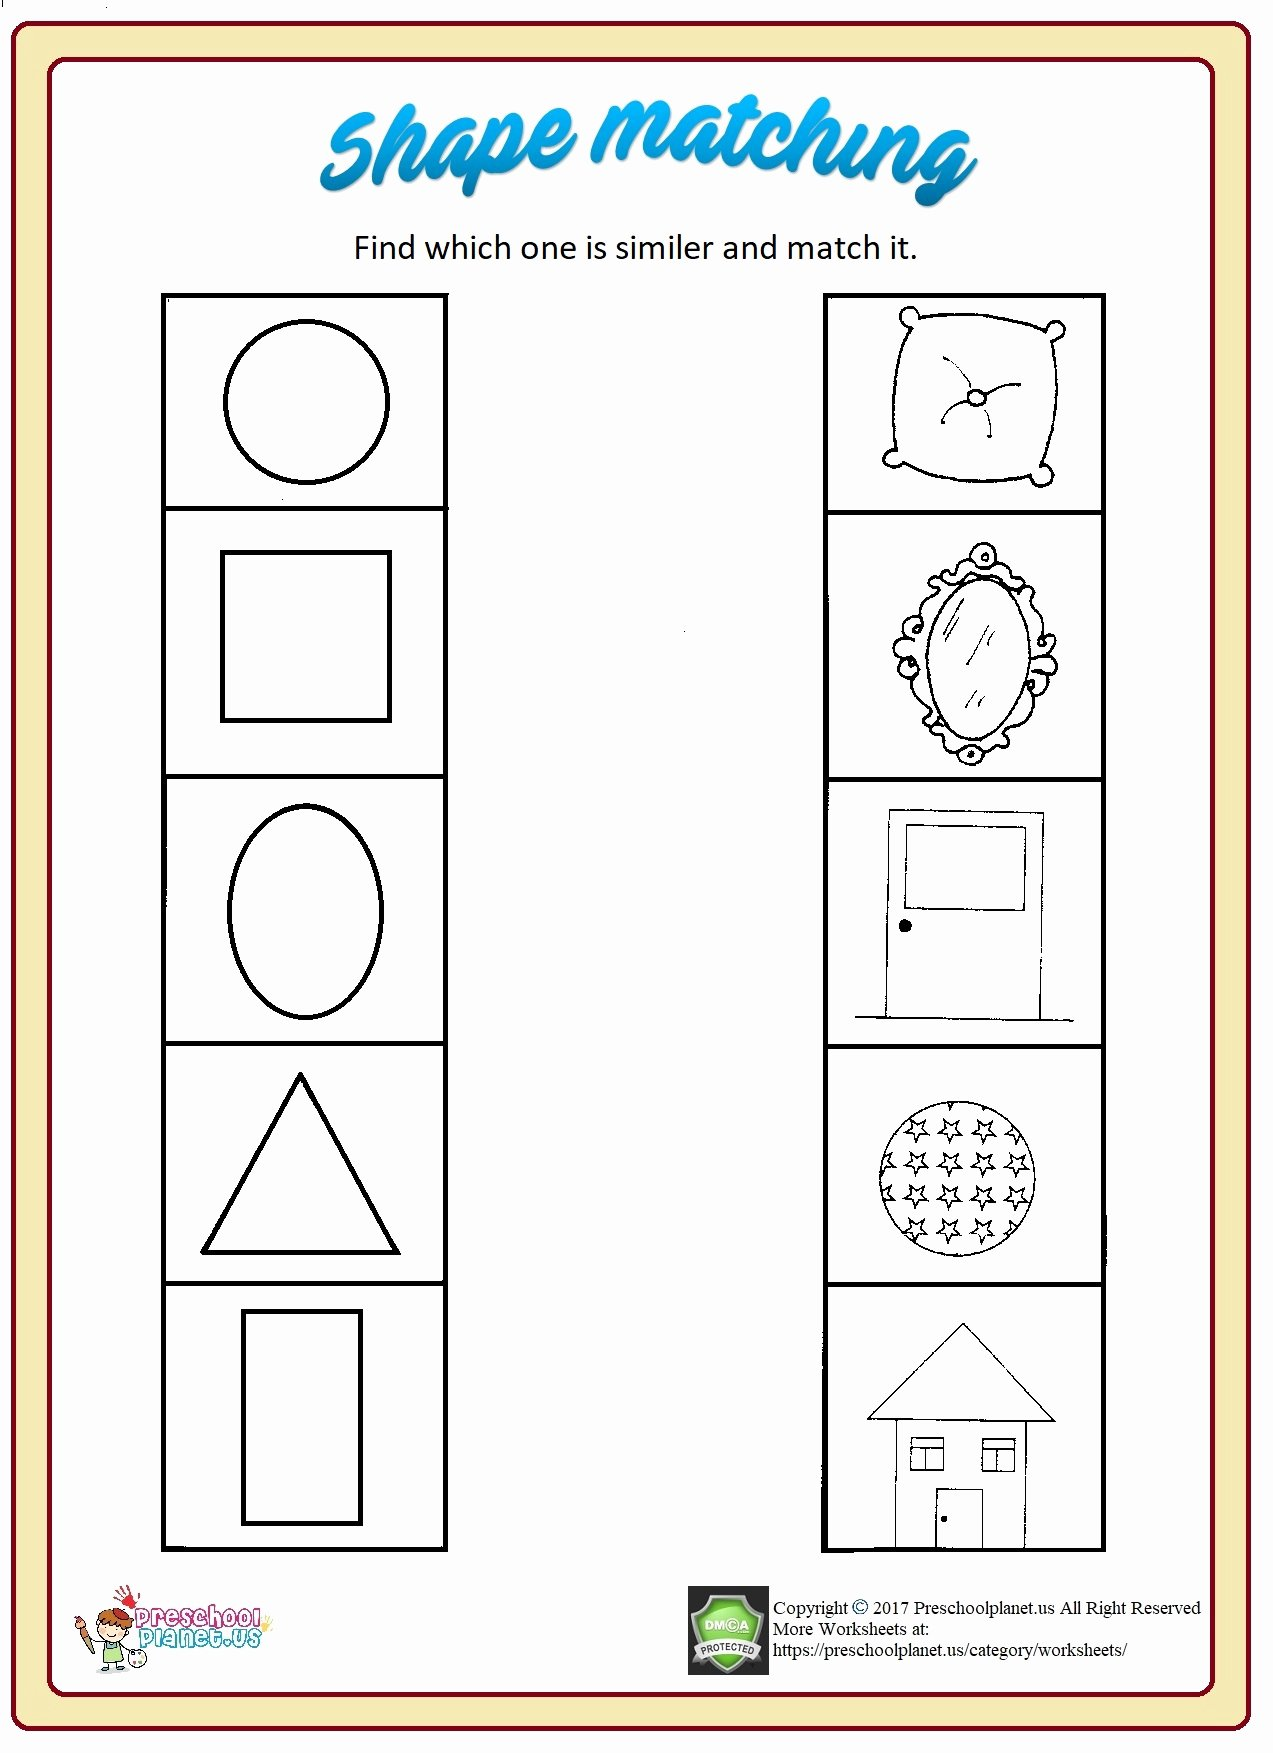 Matching Shapes Worksheets for Preschoolers top Shape Matching Worksheet – Preschoolplanet